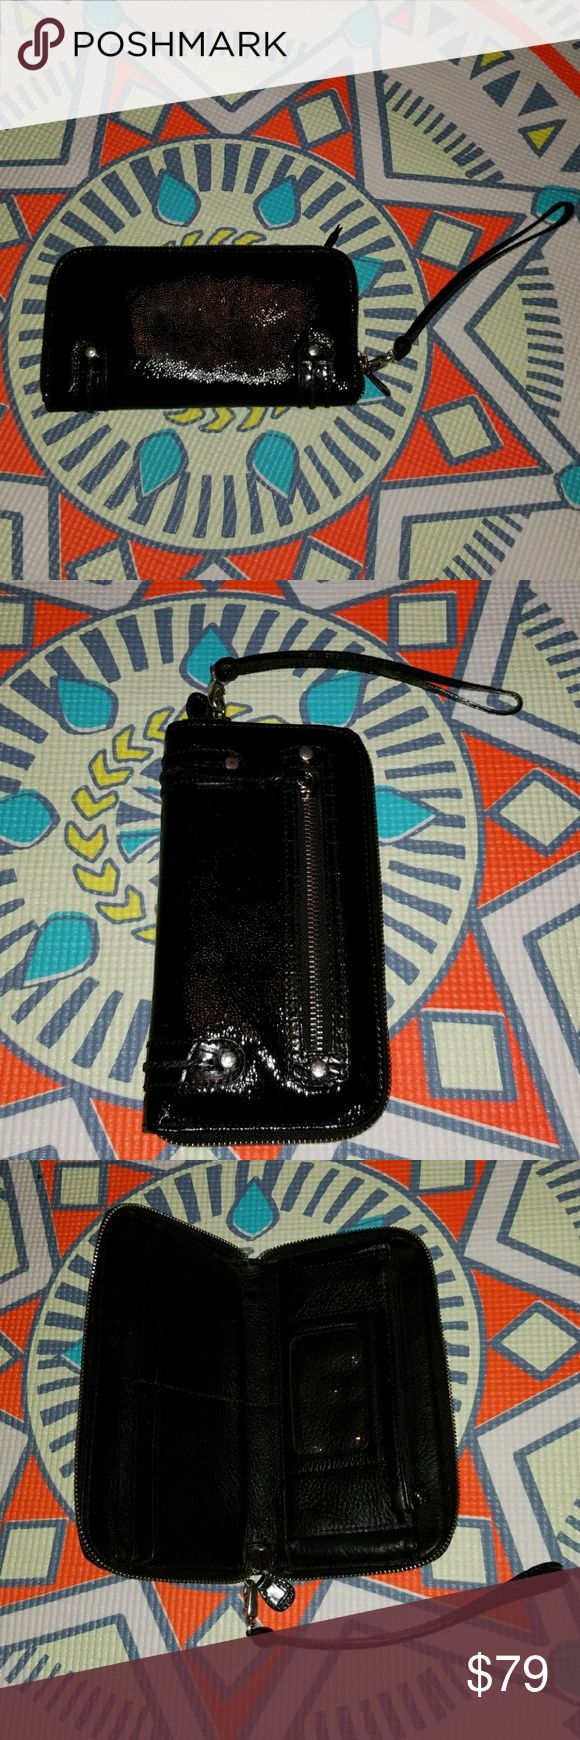 Brighton Wallet/Wristlet Black patent and it zips all around so you can lose anything from inside!  EuC! Brighton Bags Wallets